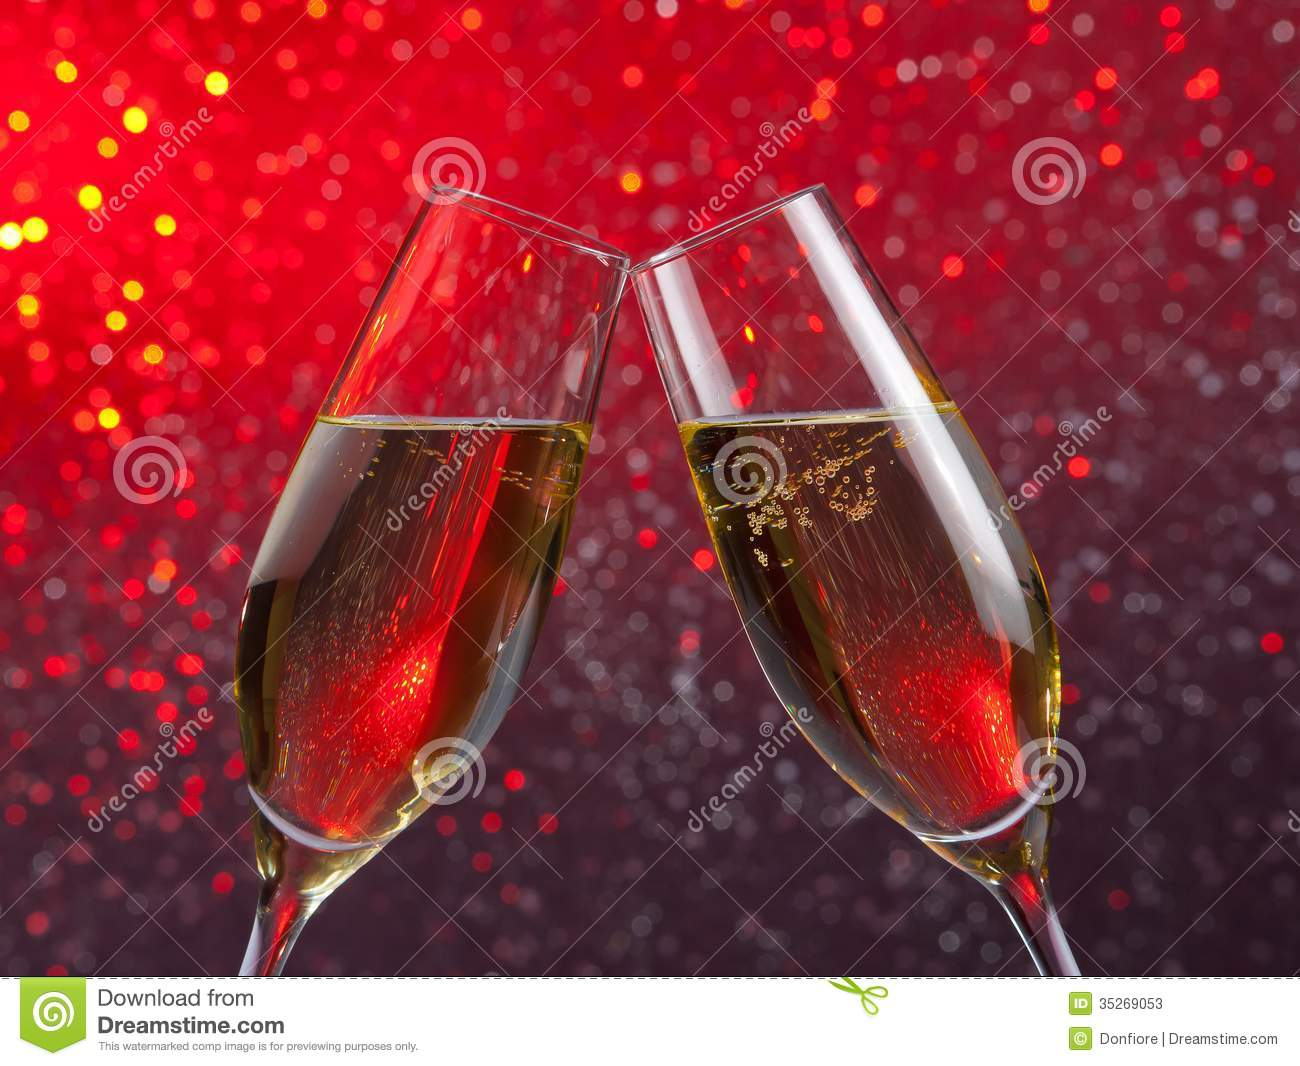 pair of a champagne flutes with gold bubbles on red and violet light